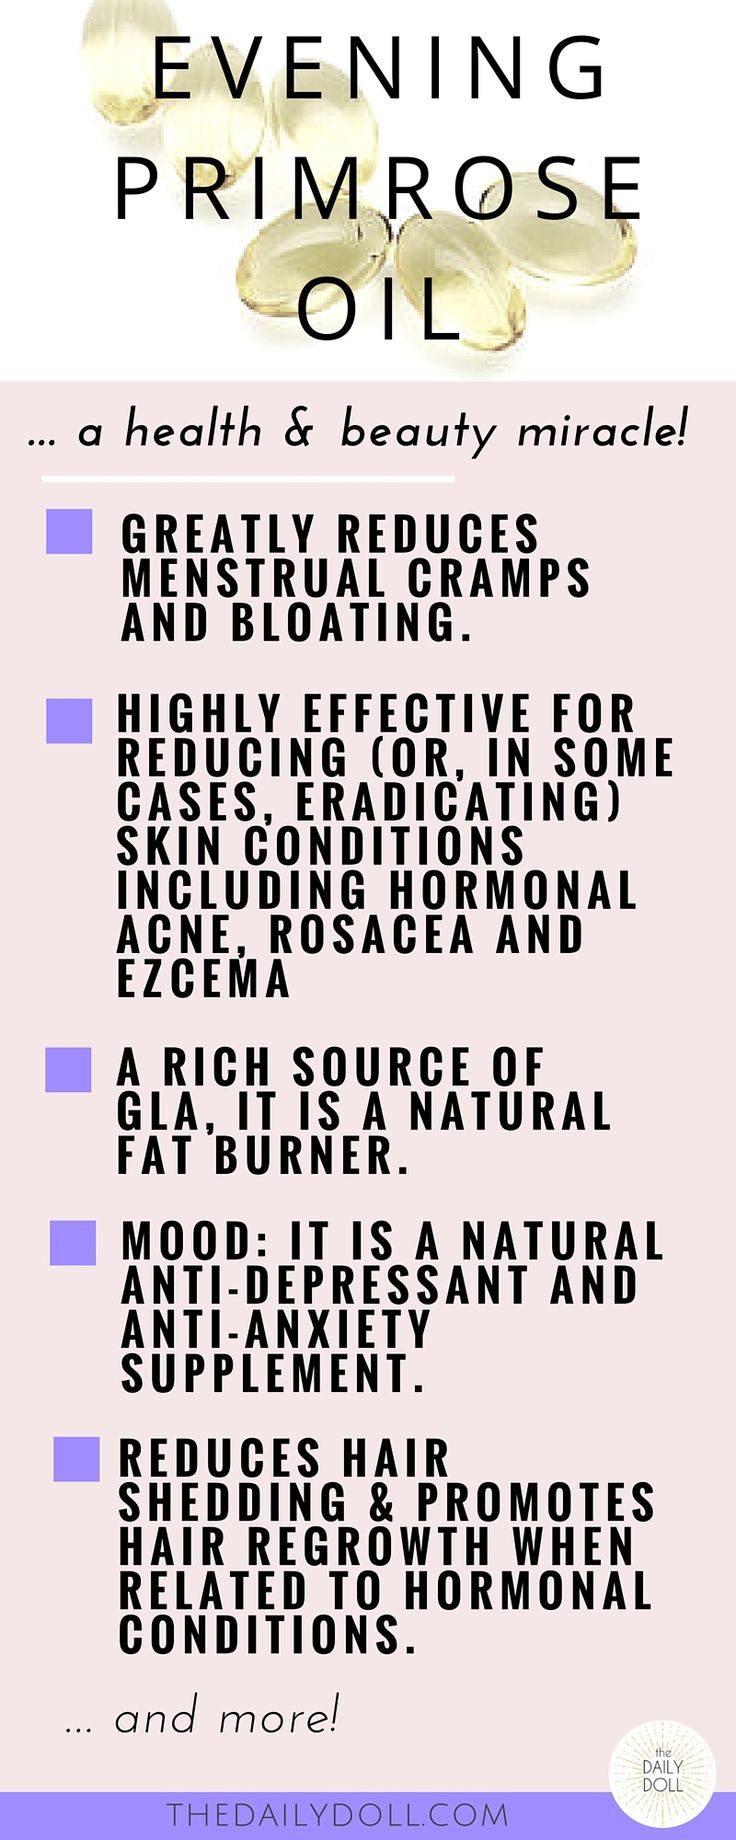 You Maca Me Crazy! An Outspoken Guide to Happier Lady Parts -- Evening Primrose Oil is a PMS Cure, Balances Hormones